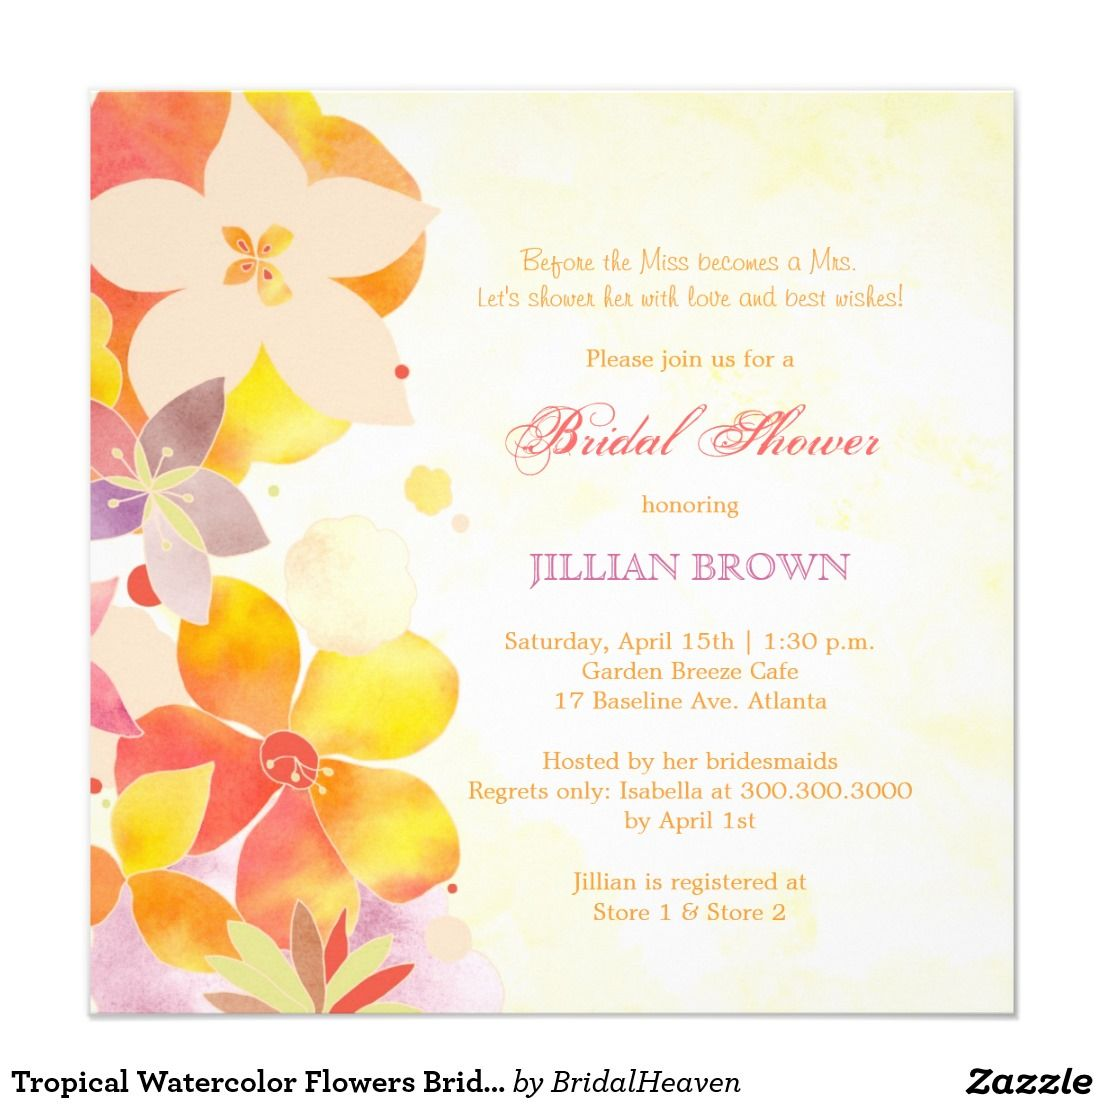 Tropical watercolor flowers bridal shower invitation wedding